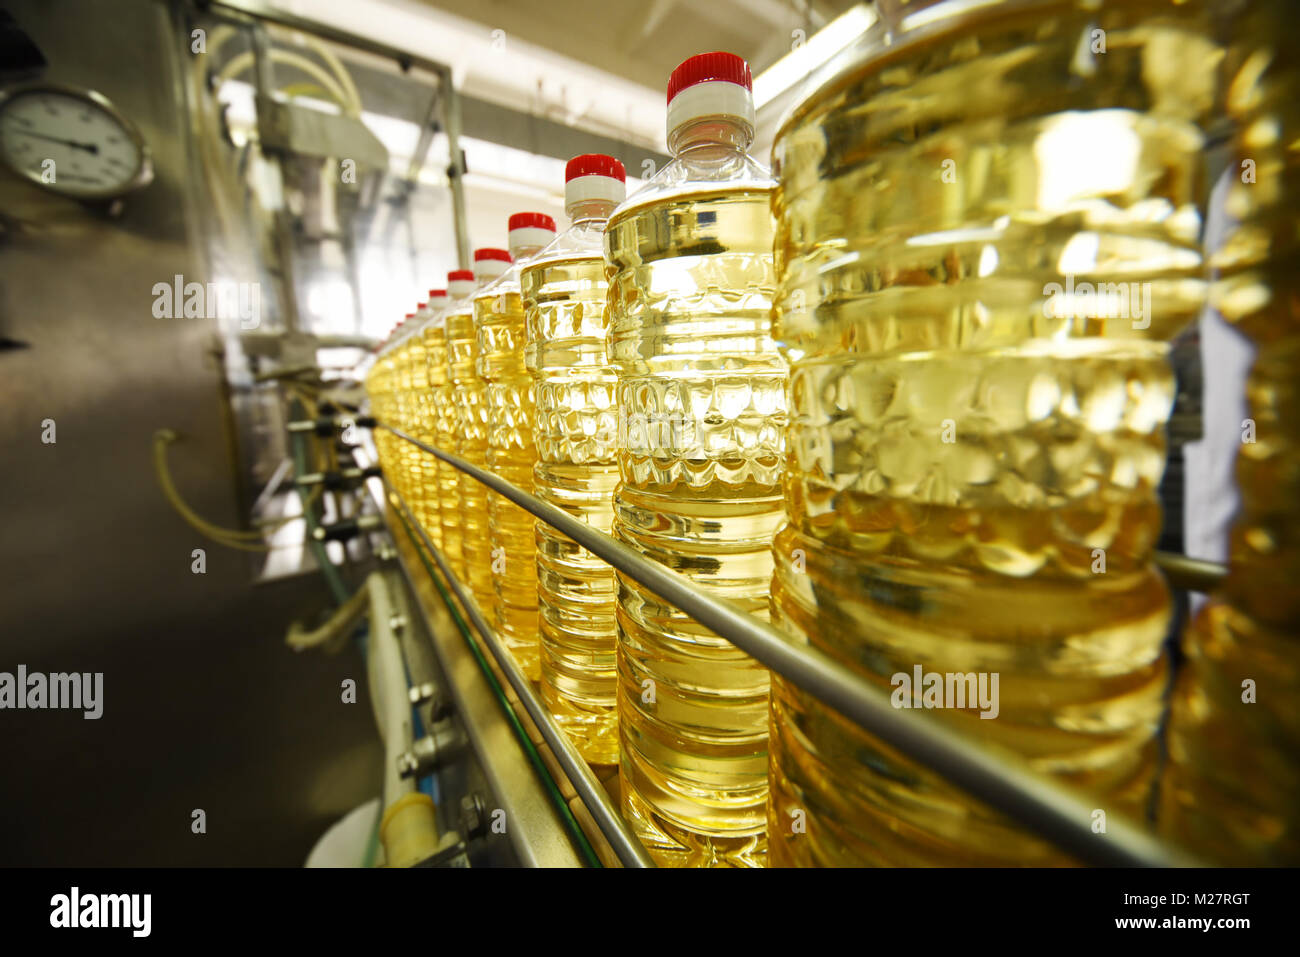 line or conveyor for food production of sunflower oil. - Stock Image